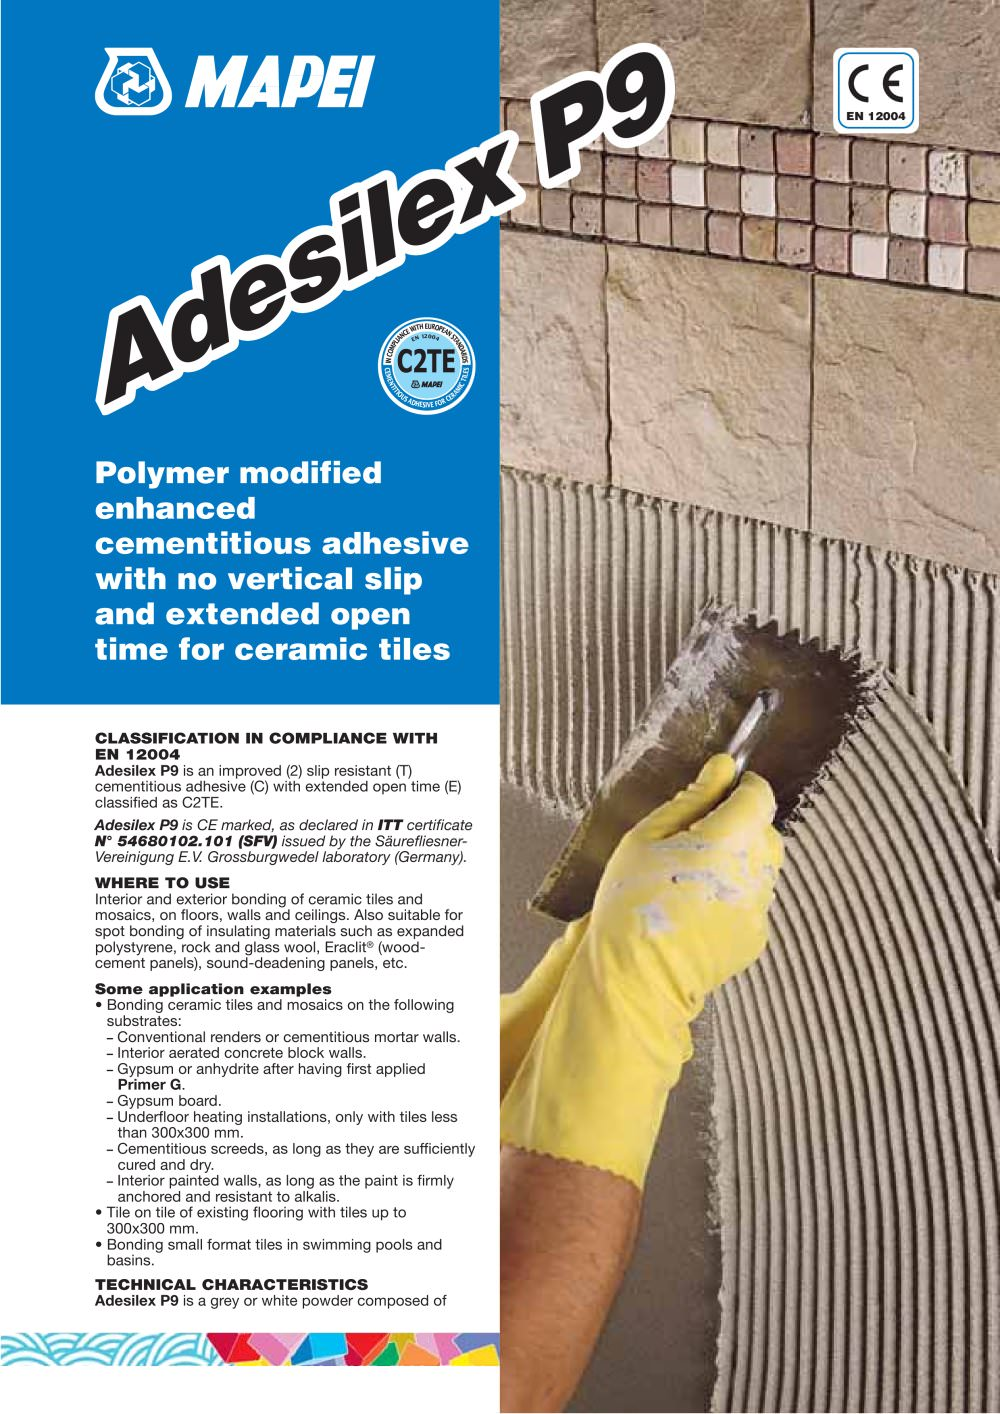 Mapei floor tile adhesive gallery tile flooring design ideas mapei ceramic tile mortar choice image tile flooring design ideas mapei floor tile adhesive image collections dailygadgetfo Choice Image